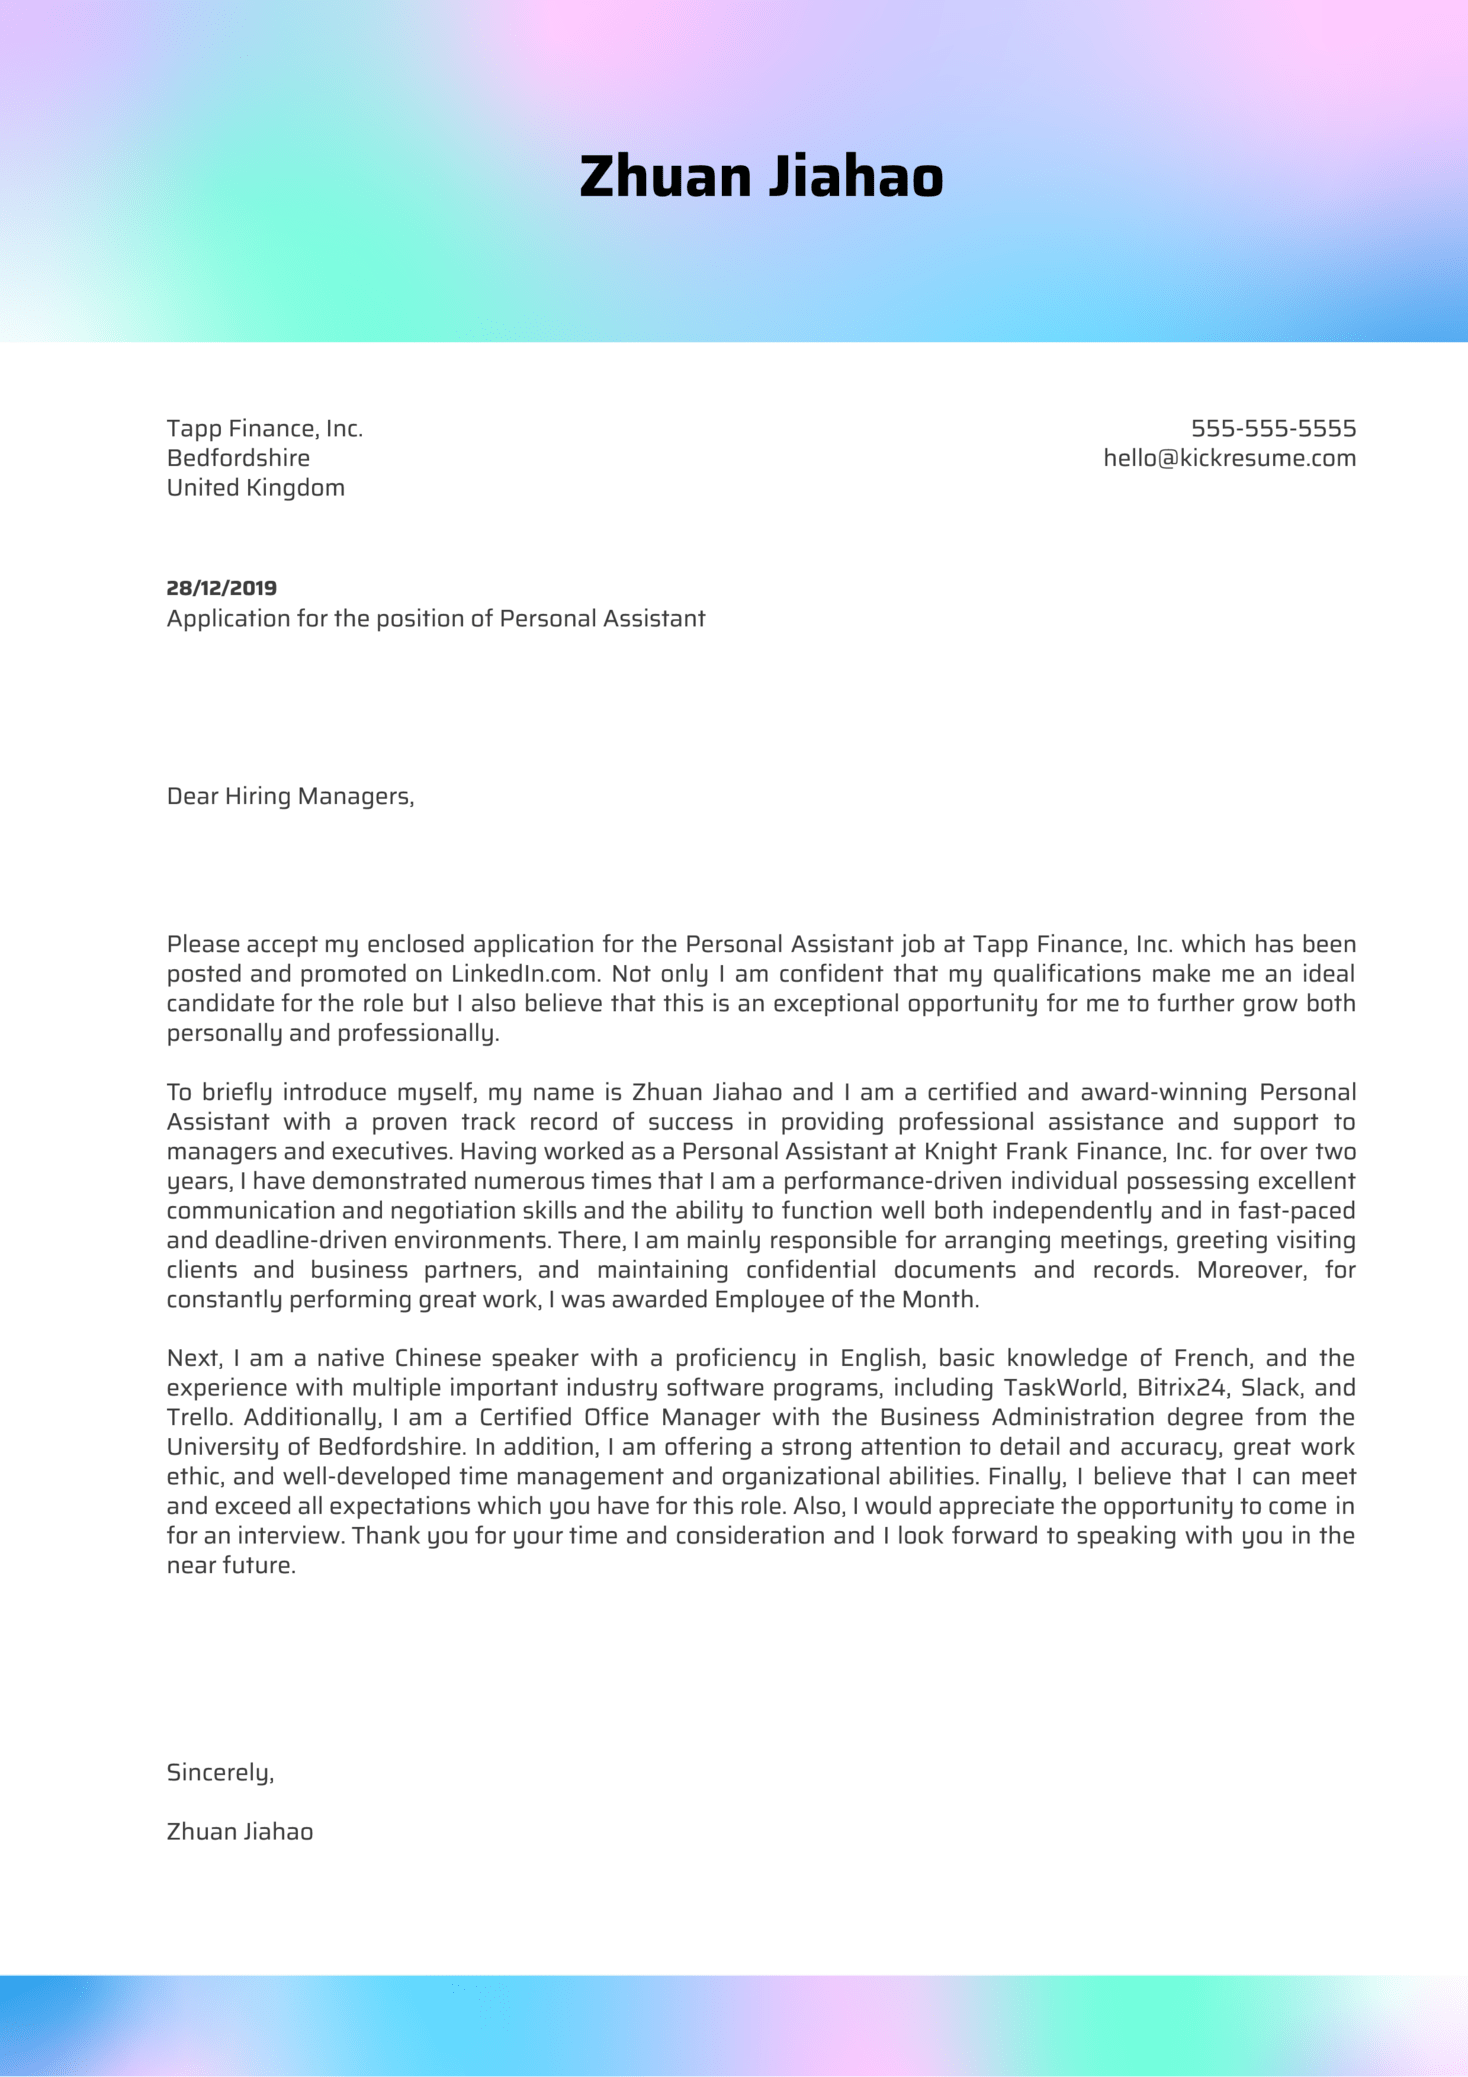 Personal Assistant Cover Letter Example